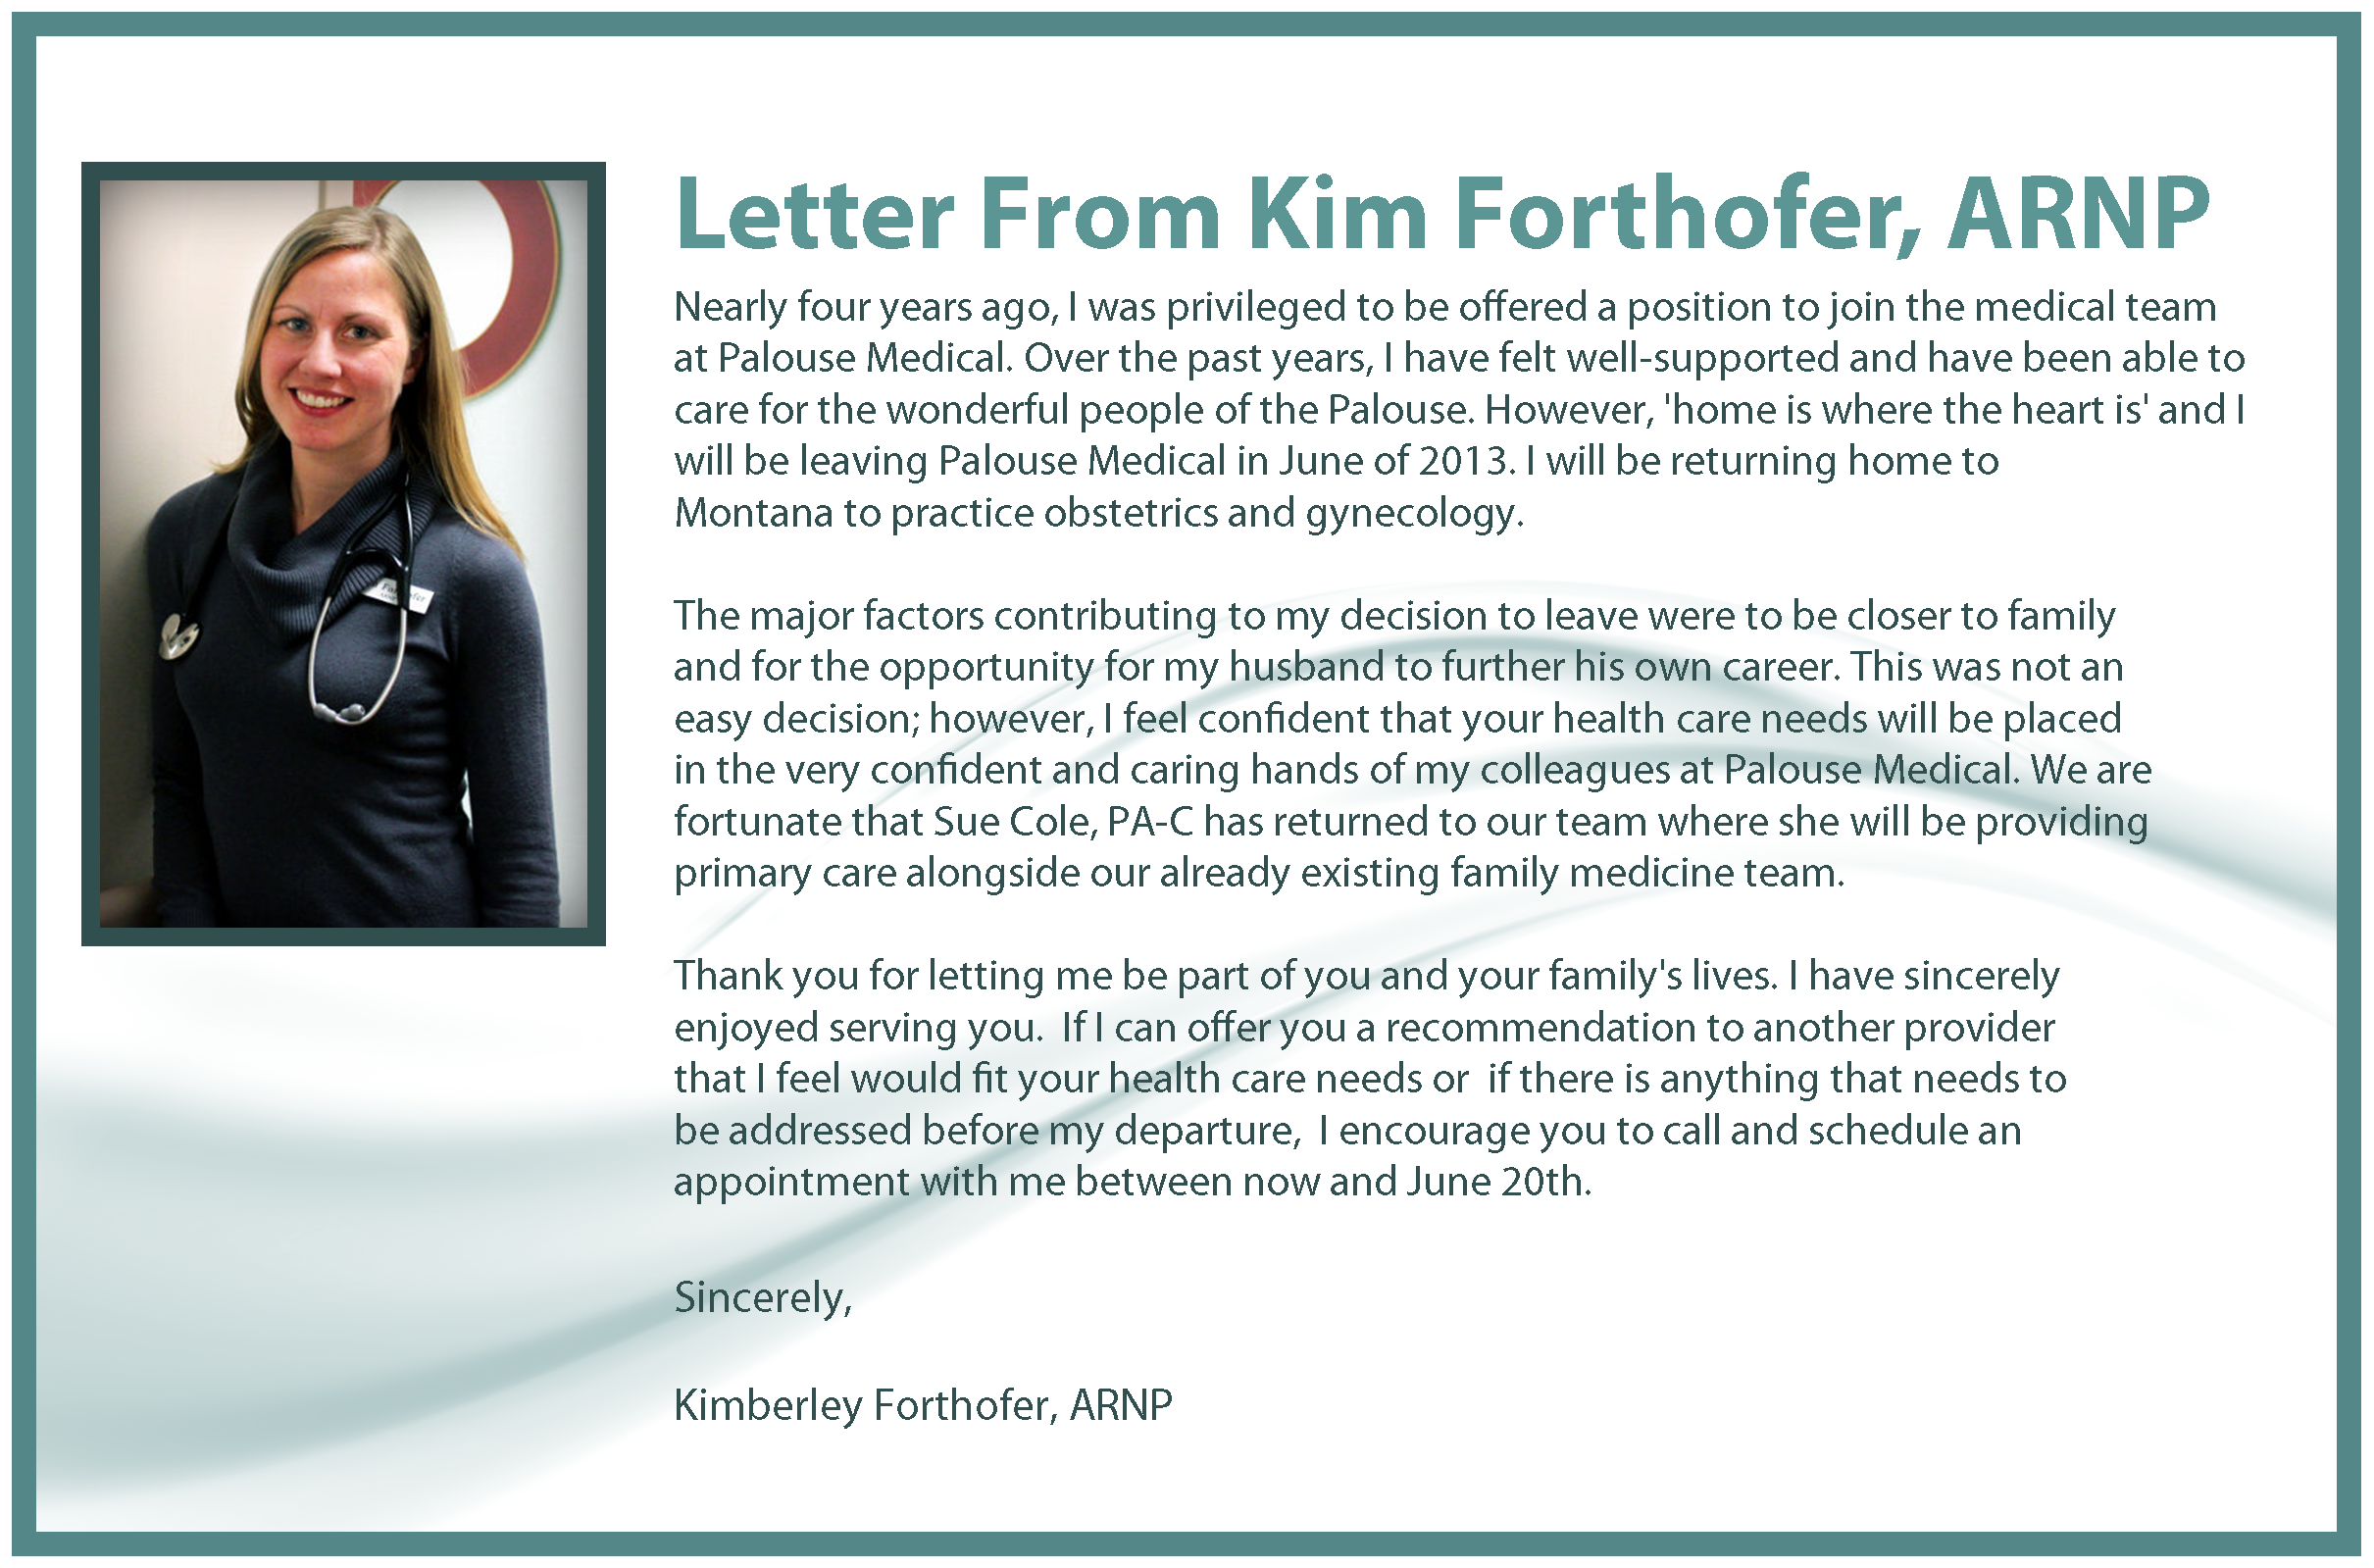 Kim Forthofer Farewell Letter Image - May 2013